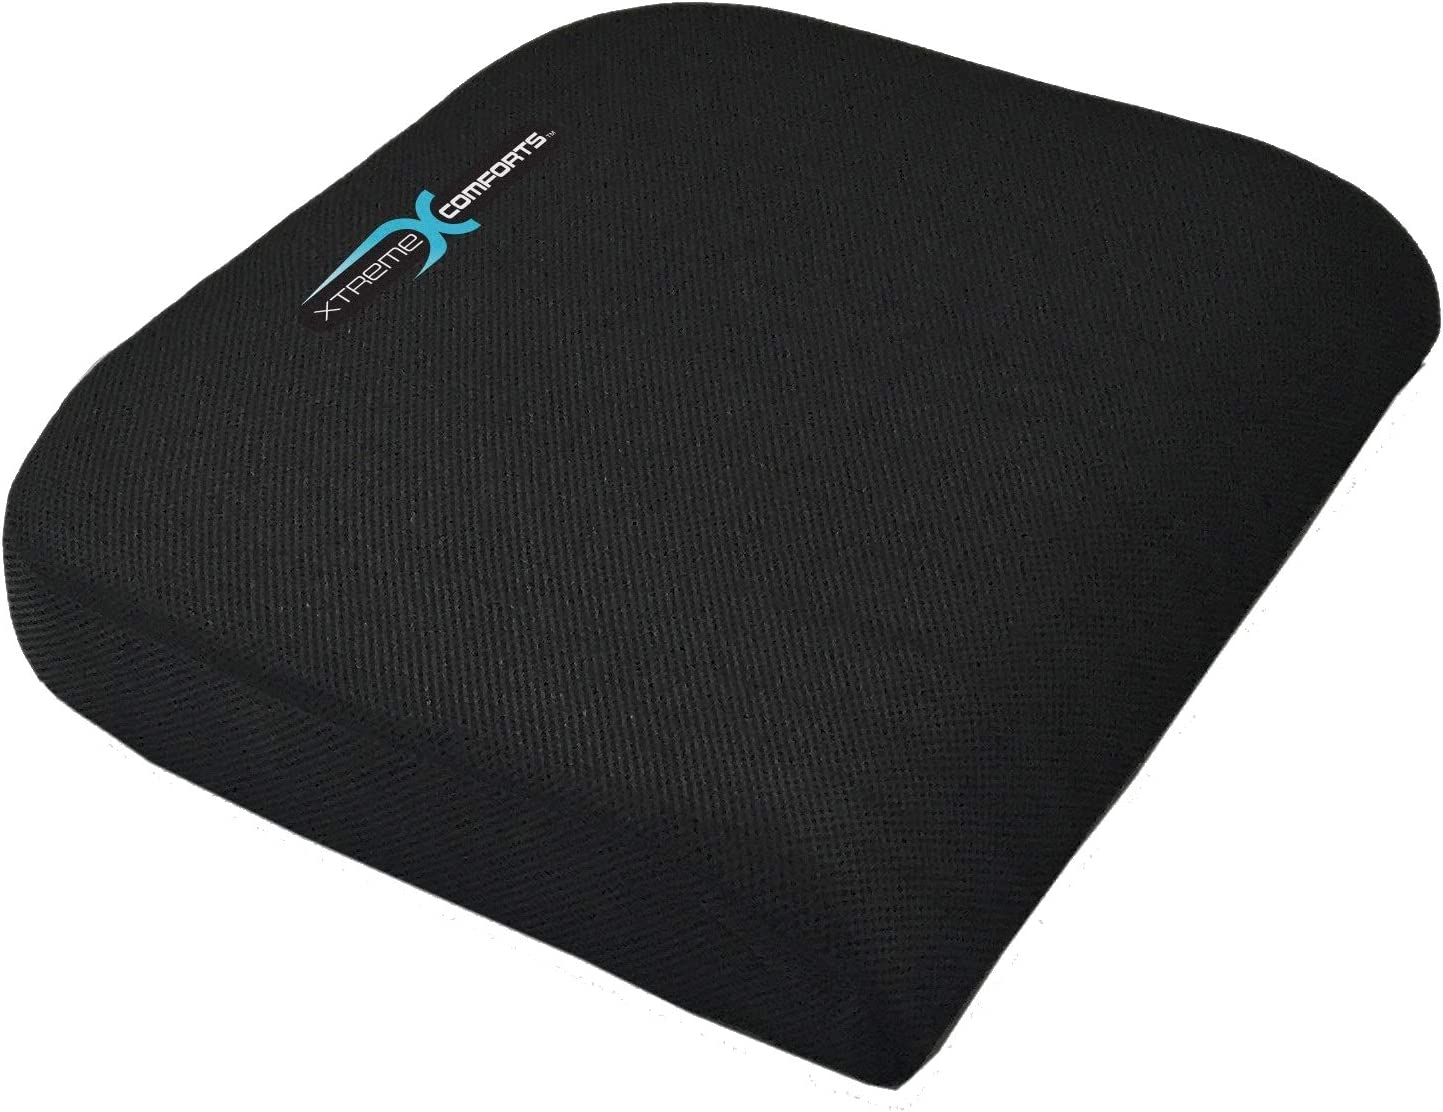 Xtreme Comforts Large Seat Cushion with Carry Handle and Anti Slip Bottom Gives Relief from Back Pain: Health & Personal Care